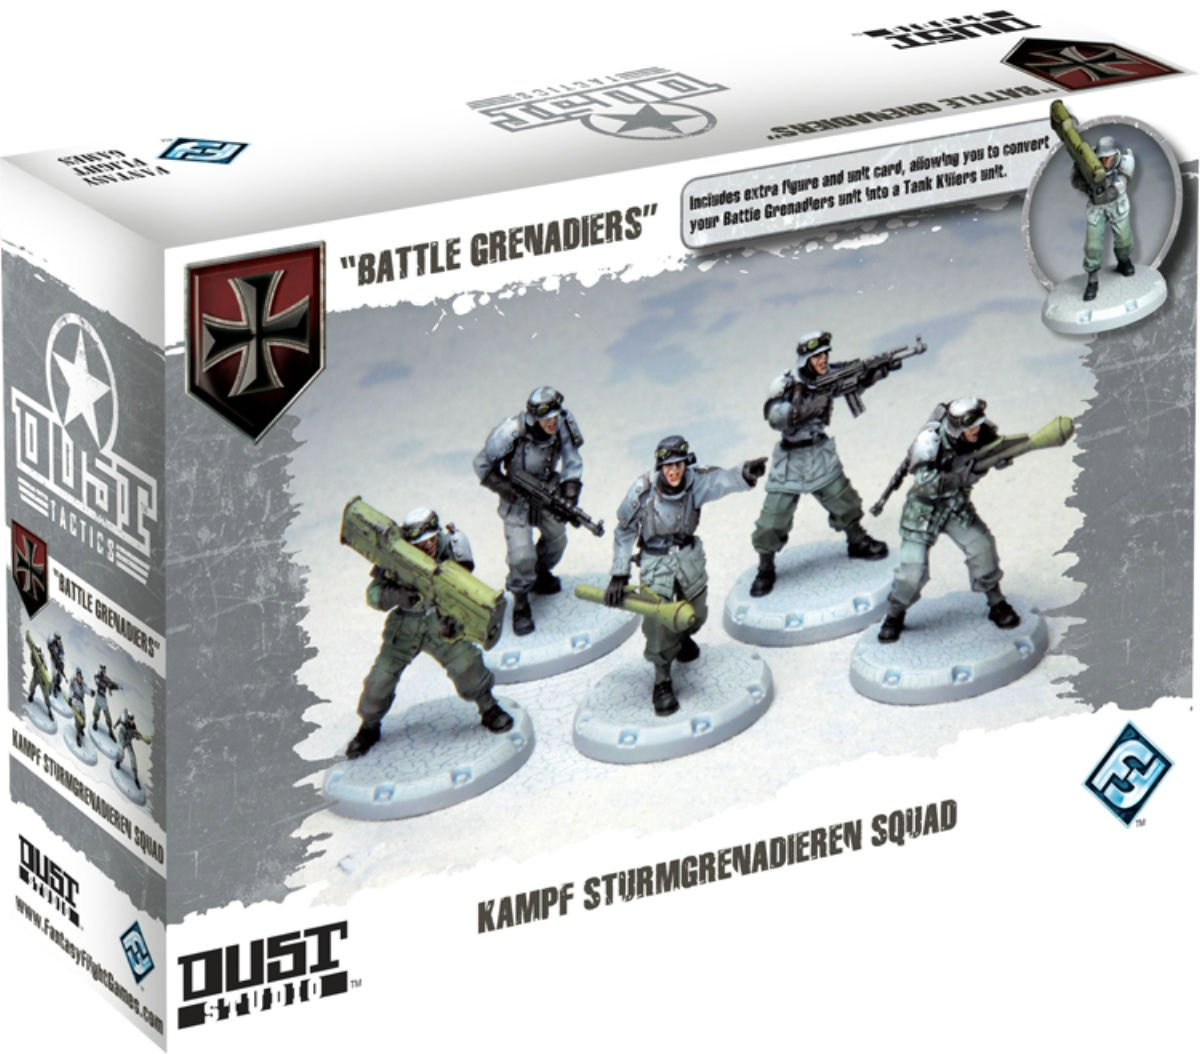 Fantasy Flight Games DT003 - Dust Tactics: Battle Grenadiers